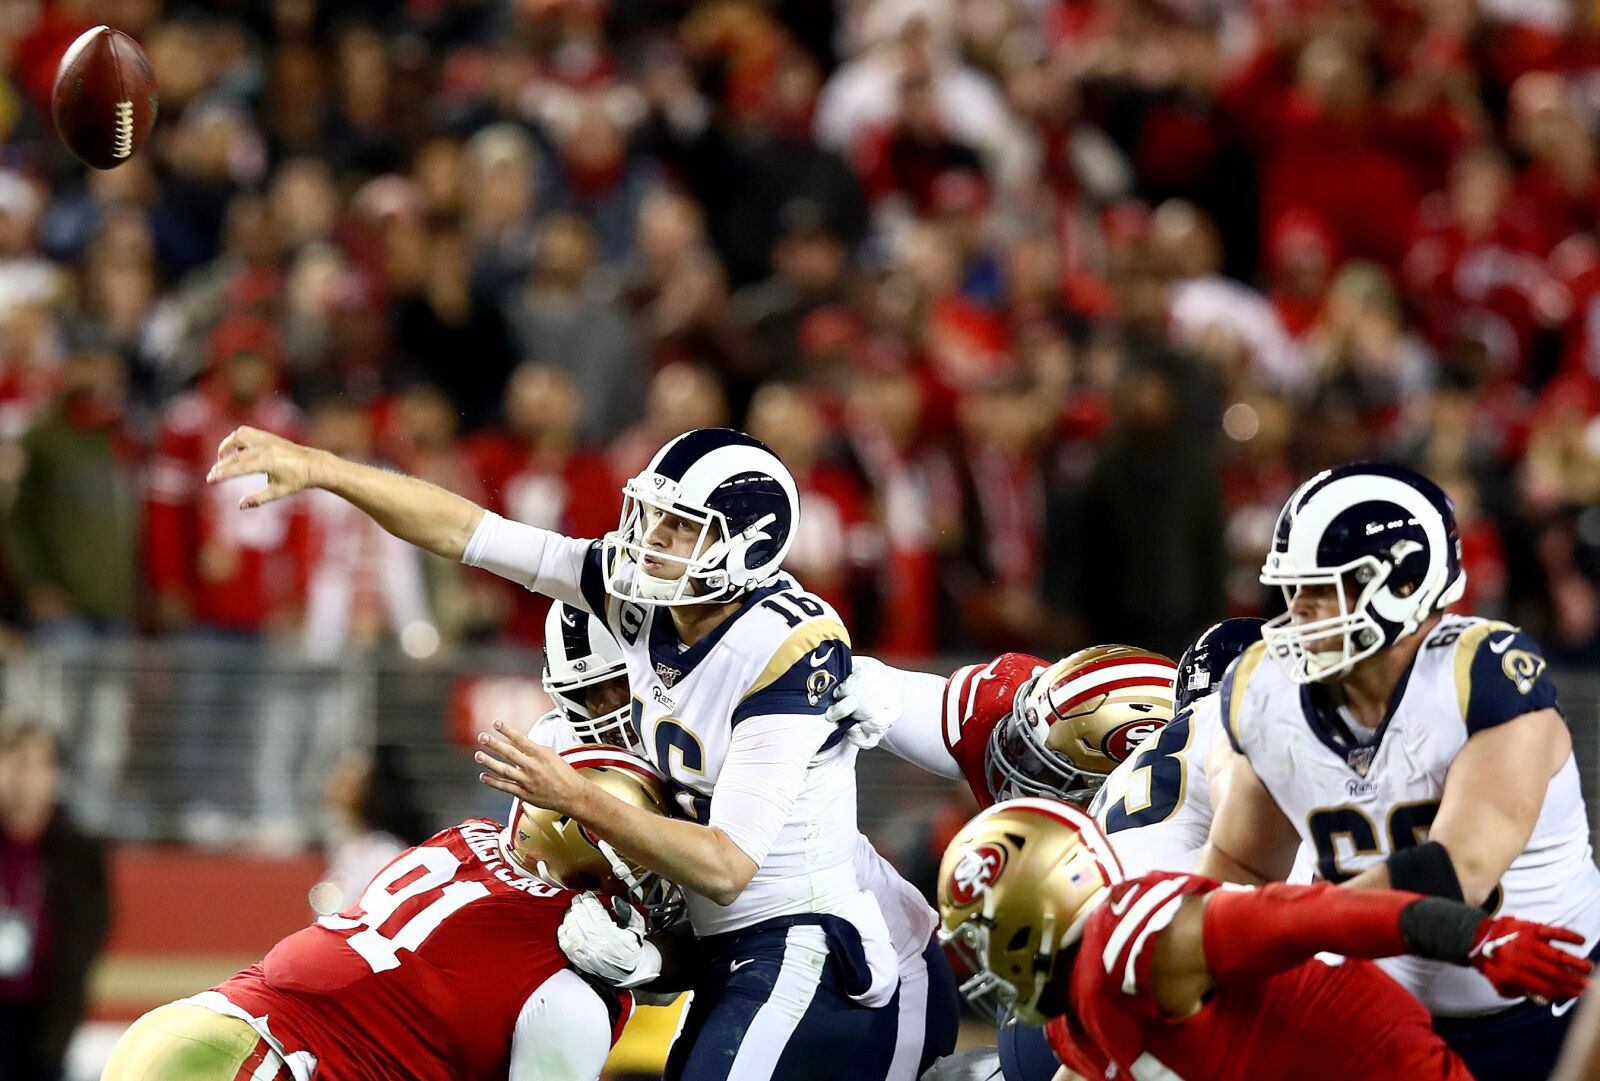 LA Rams heal as SF 49ers face Packers in NFC Championship